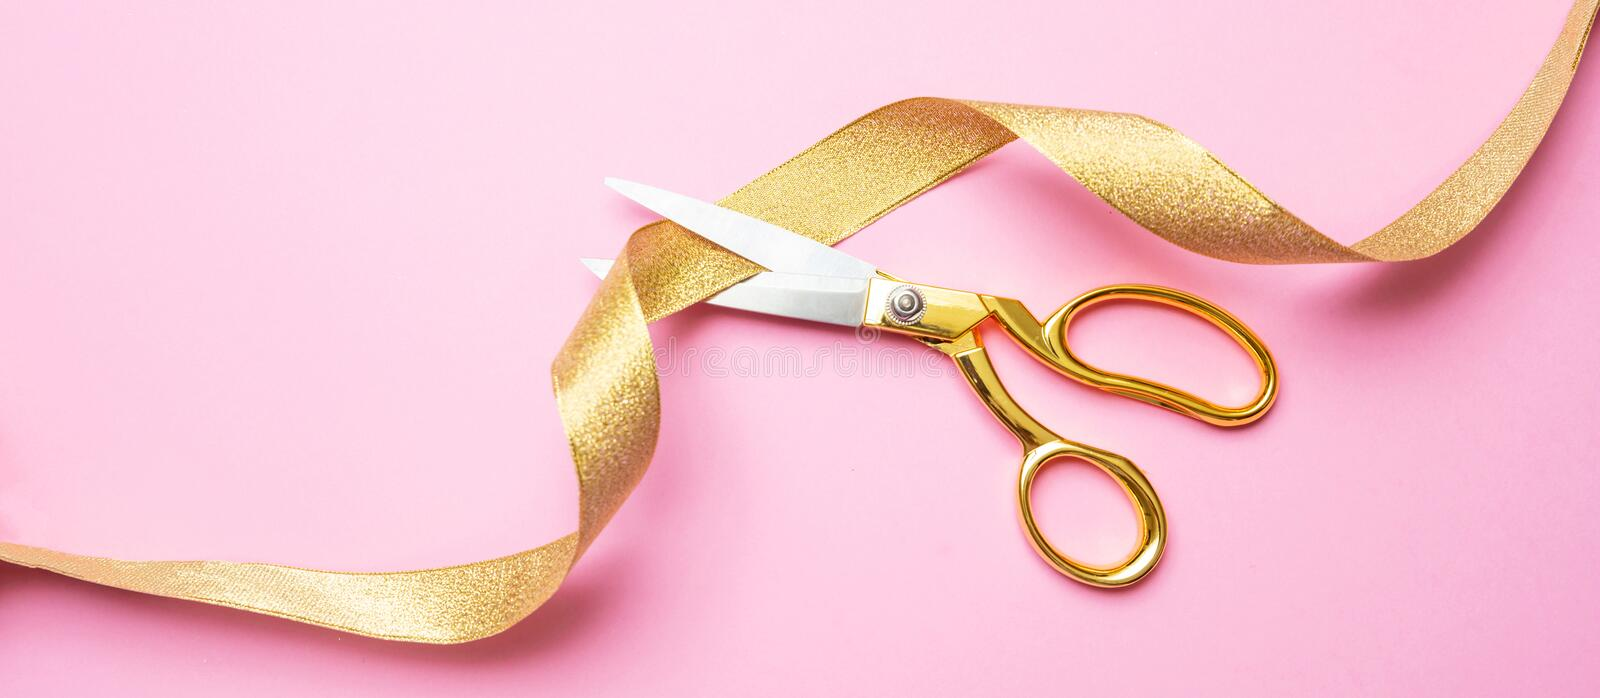 Grand opening. Gold scissors cutting golden ribbon, pink background, banner stock photos